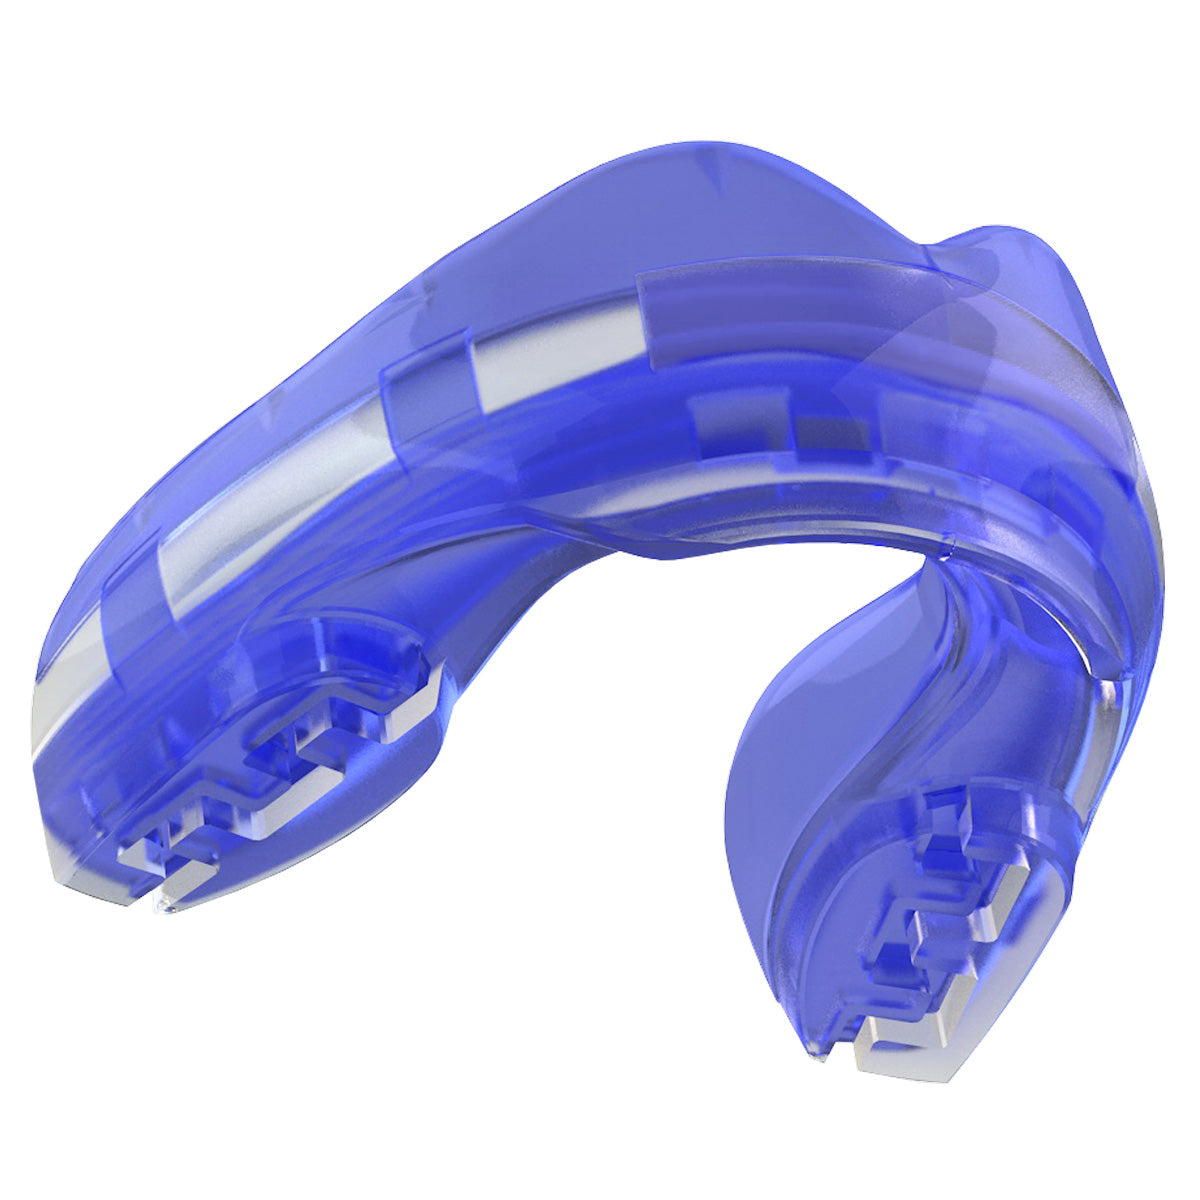 SAFEJAWZ® Ortho Series Self-Fit Mouthguard for Braces - Ice Blue